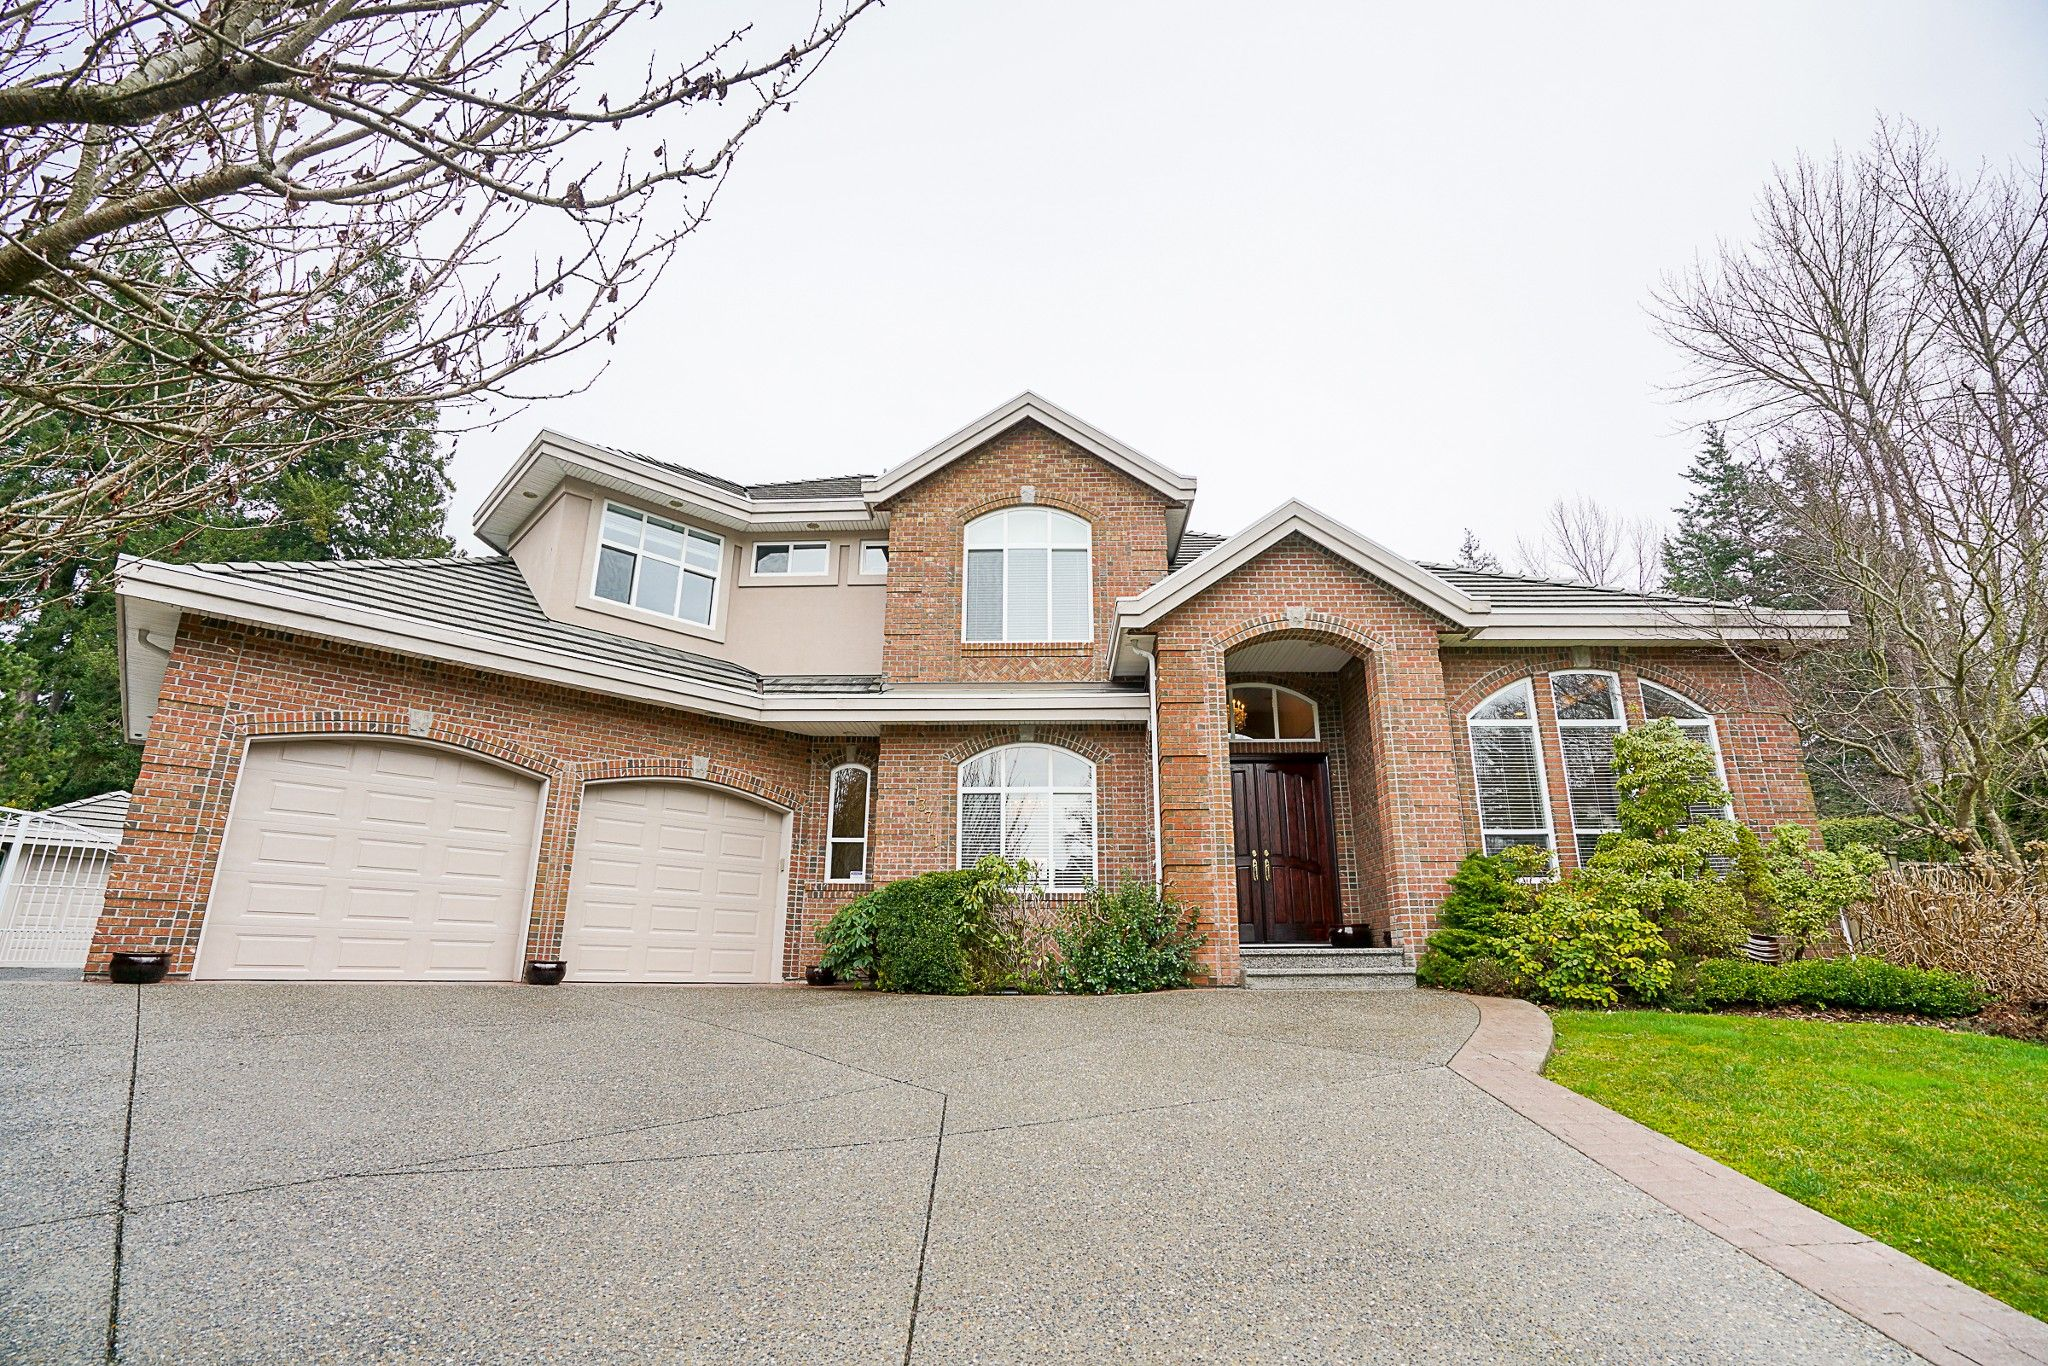 """Main Photo: 13711 22B Avenue in Surrey: Elgin Chantrell House for sale in """"CHANTRELL PARK"""" (South Surrey White Rock)  : MLS®# R2237432"""